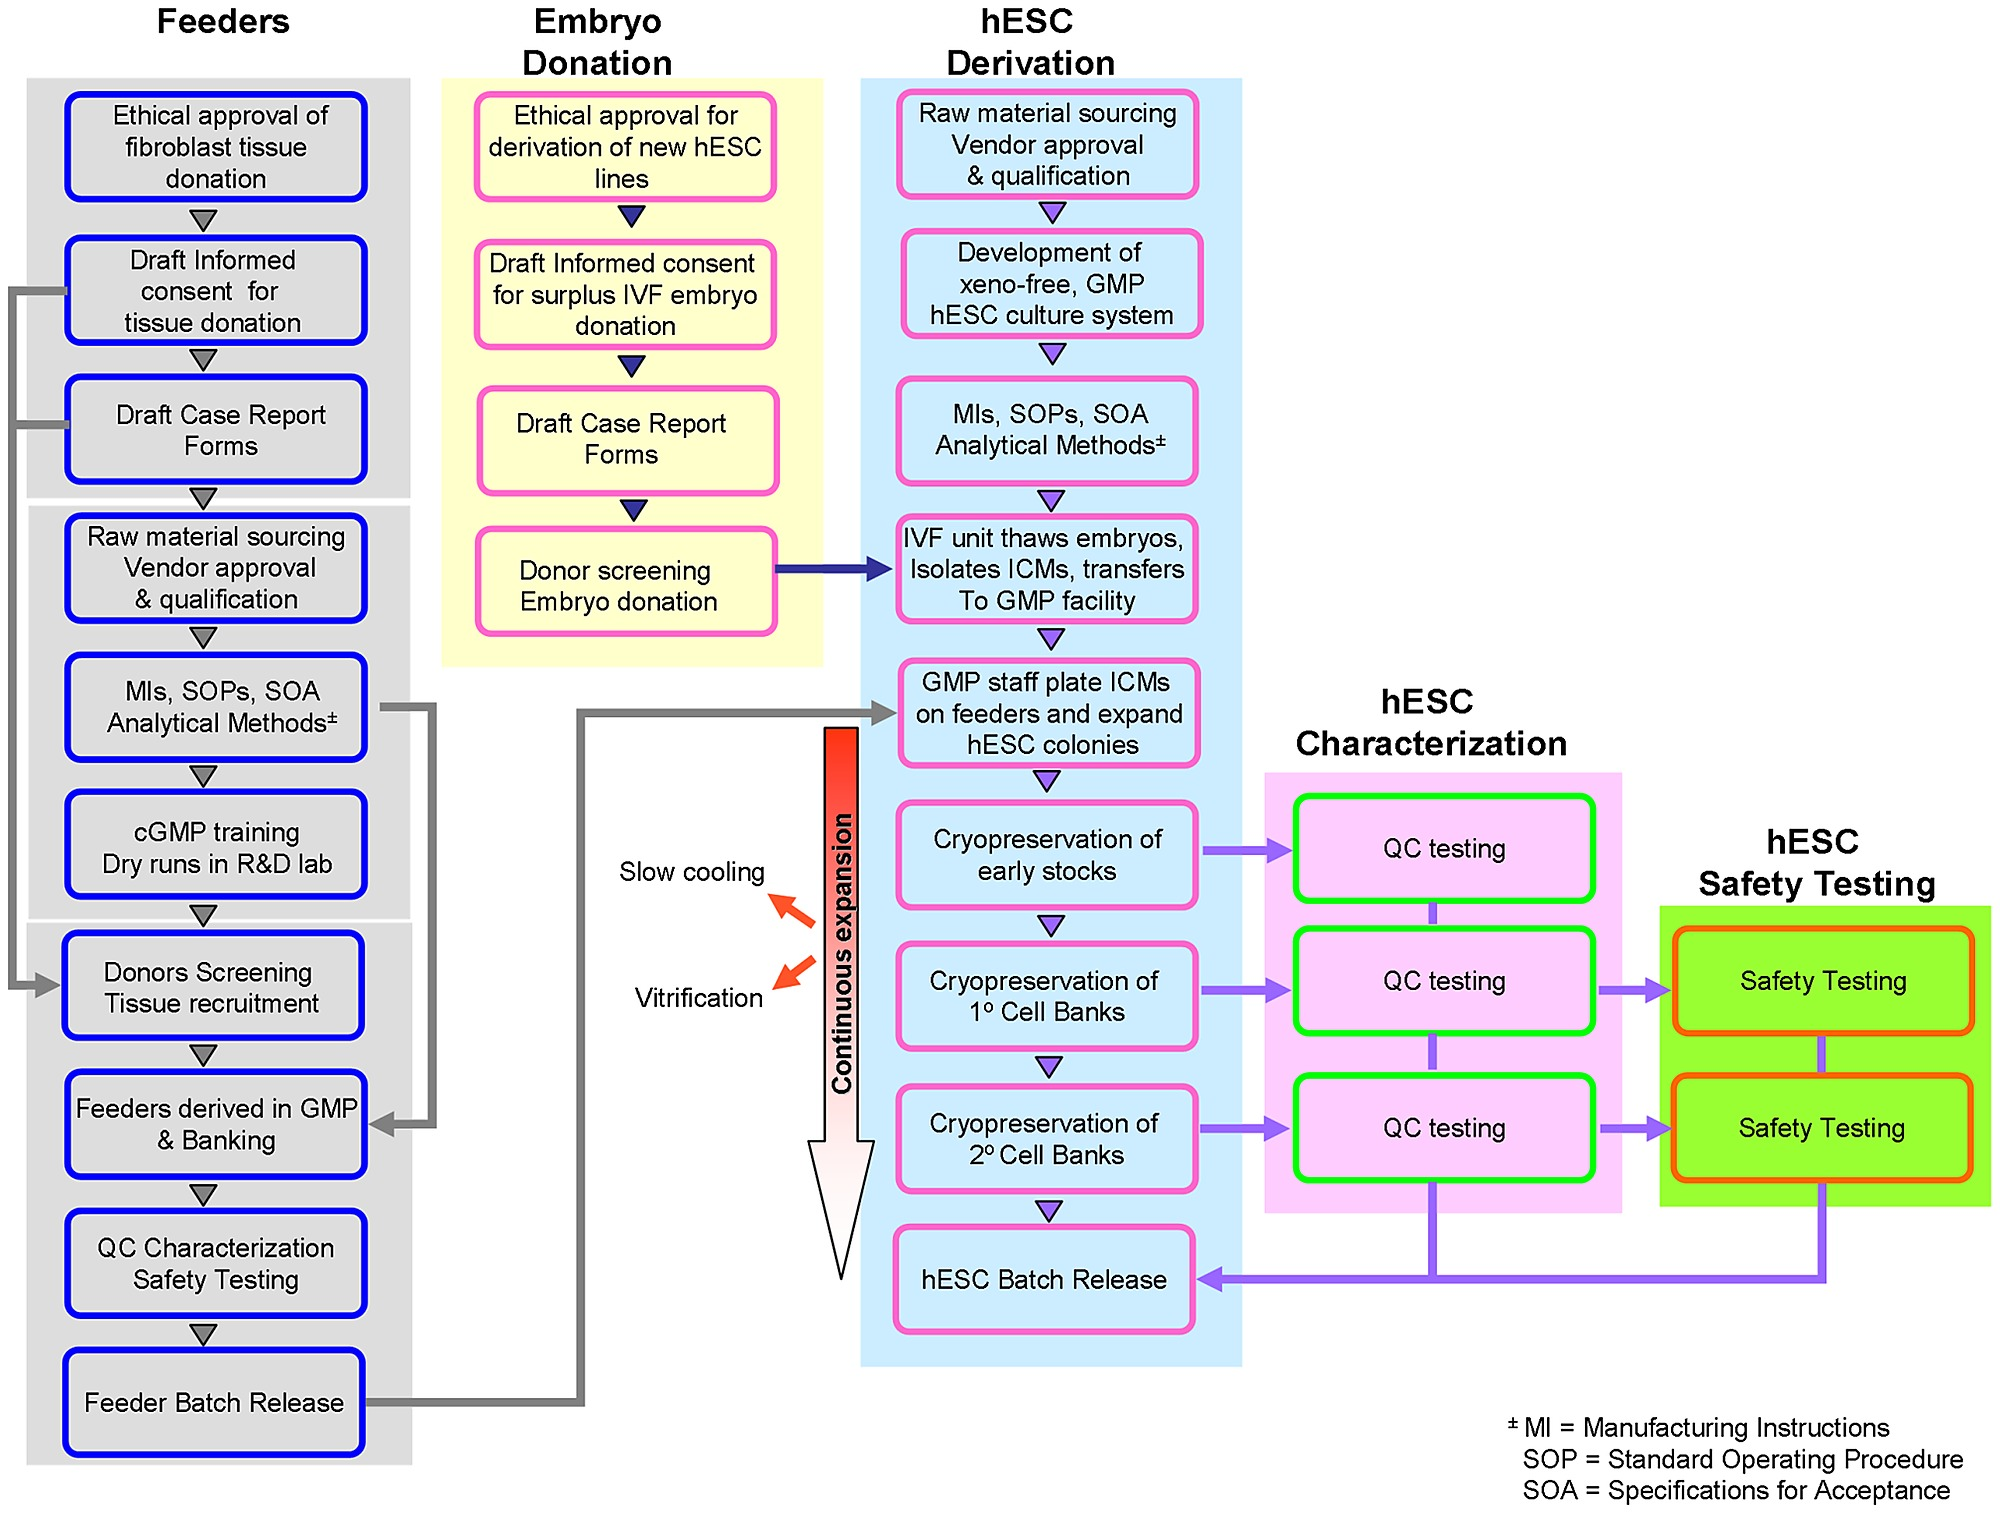 Process Flow Diagram Of The Approach Taken In Deriving Xeno Free Training Clinical Grade Fibroblast Feeders And Hescs